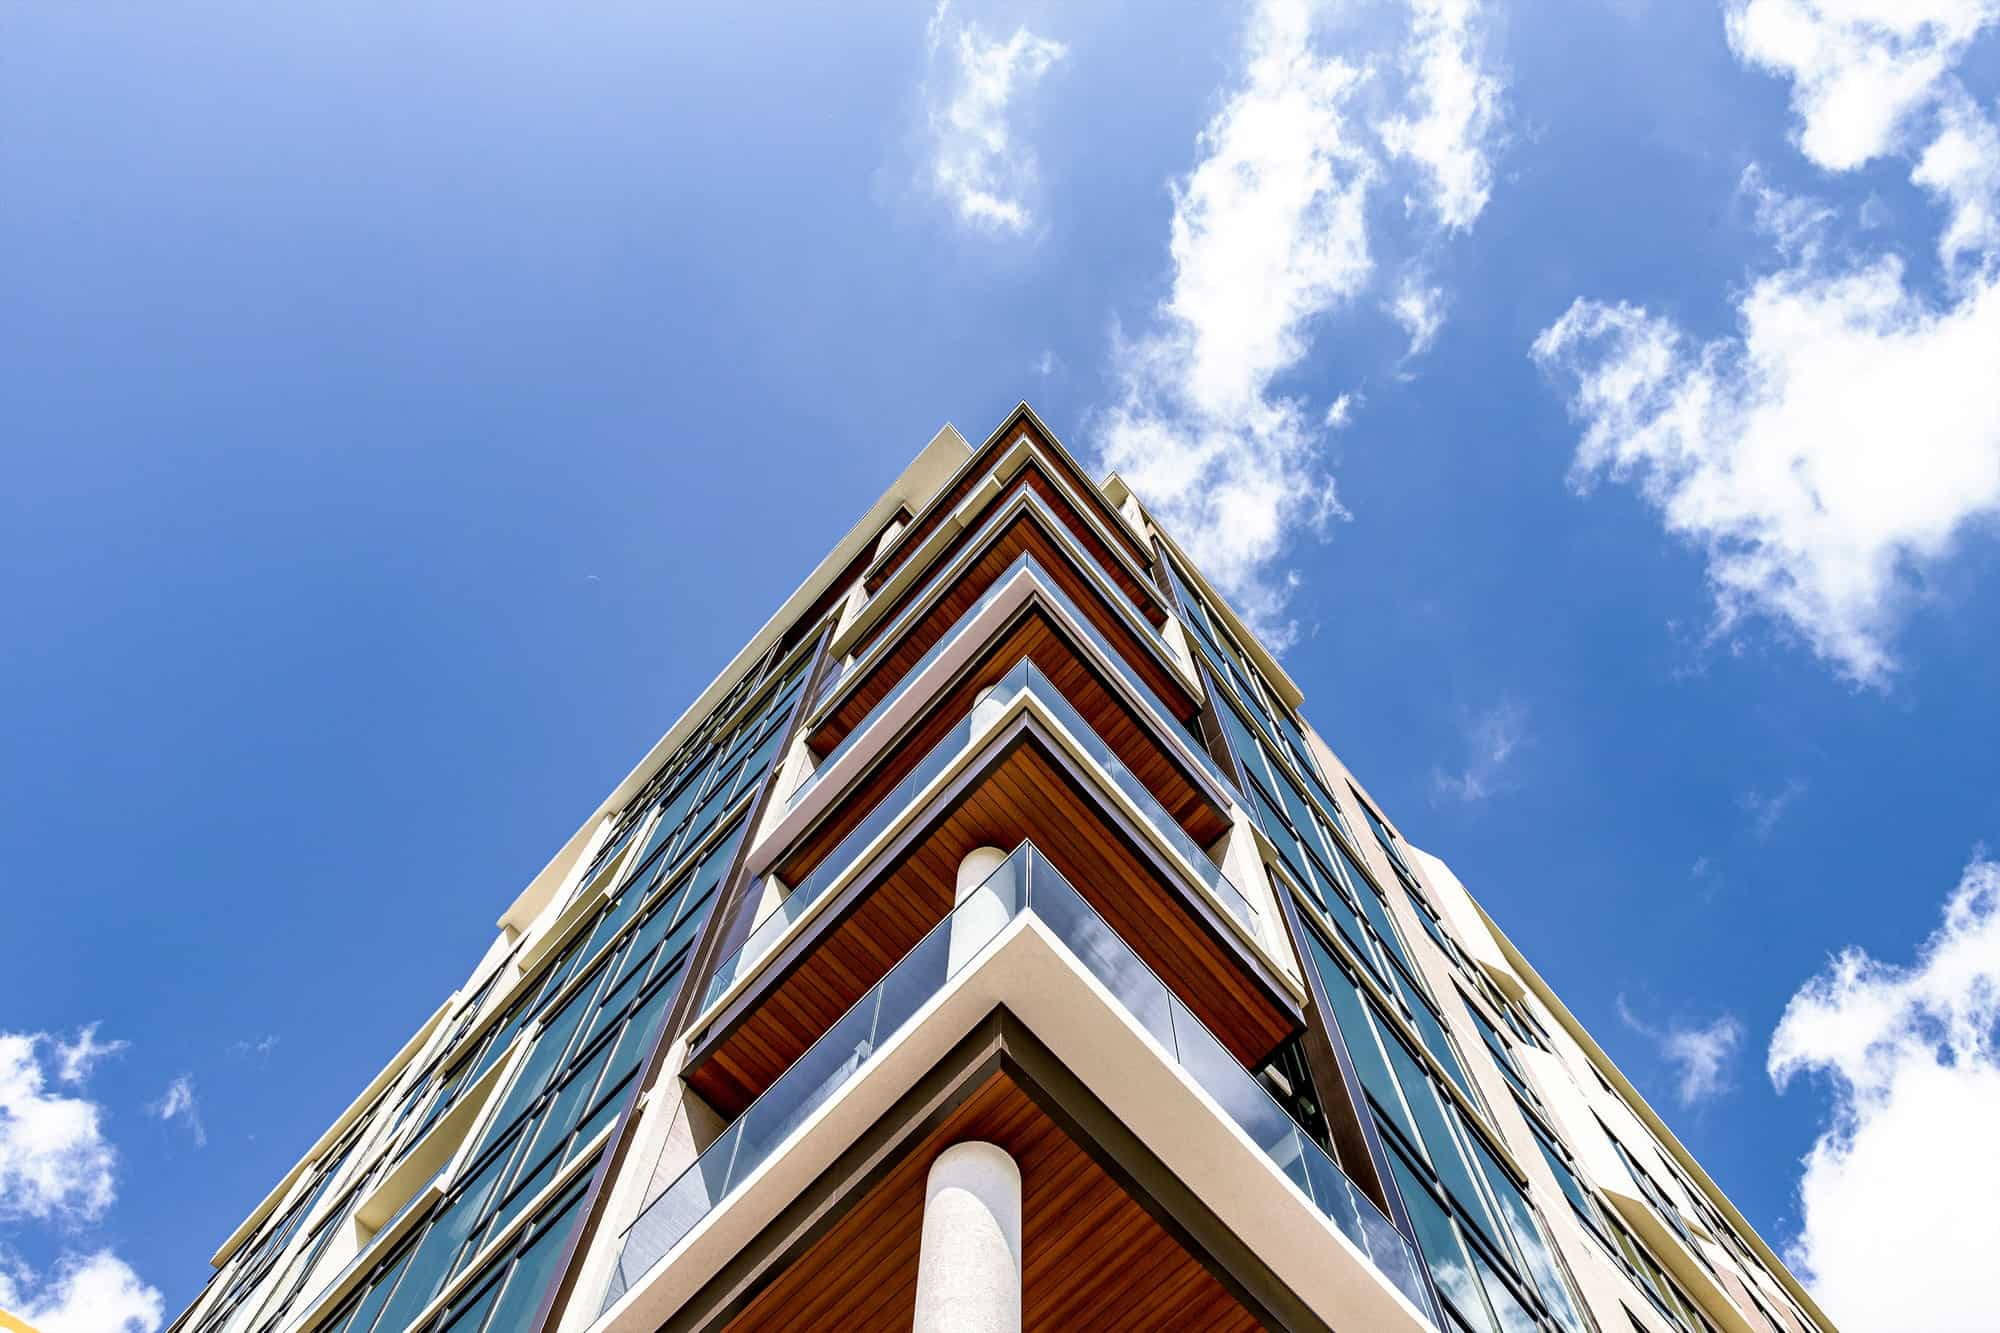 corner of the facade of the mondrian luxury apartments in hermann park of houston